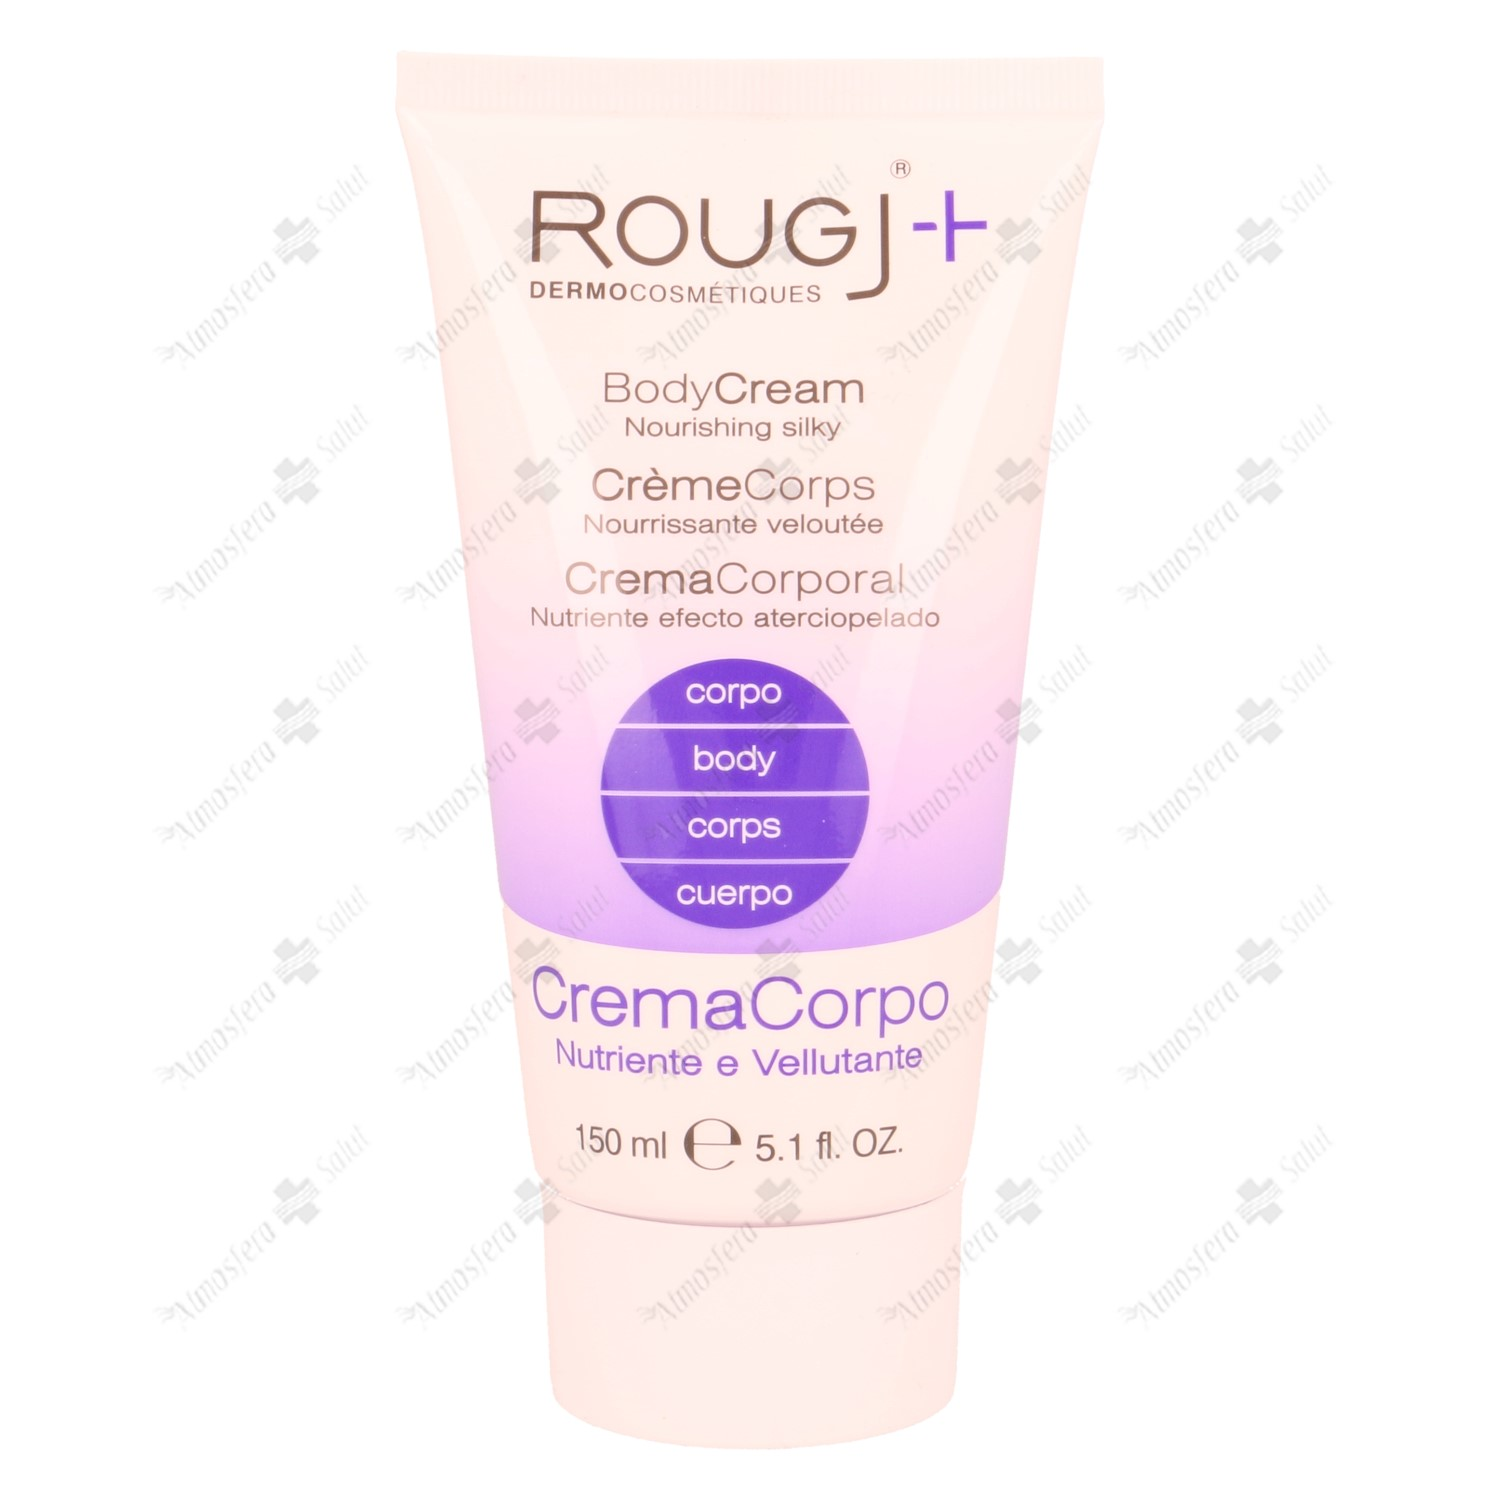 ROUGJ DERMOCOSMETIQUE CREMA CORPORAL 150 ML